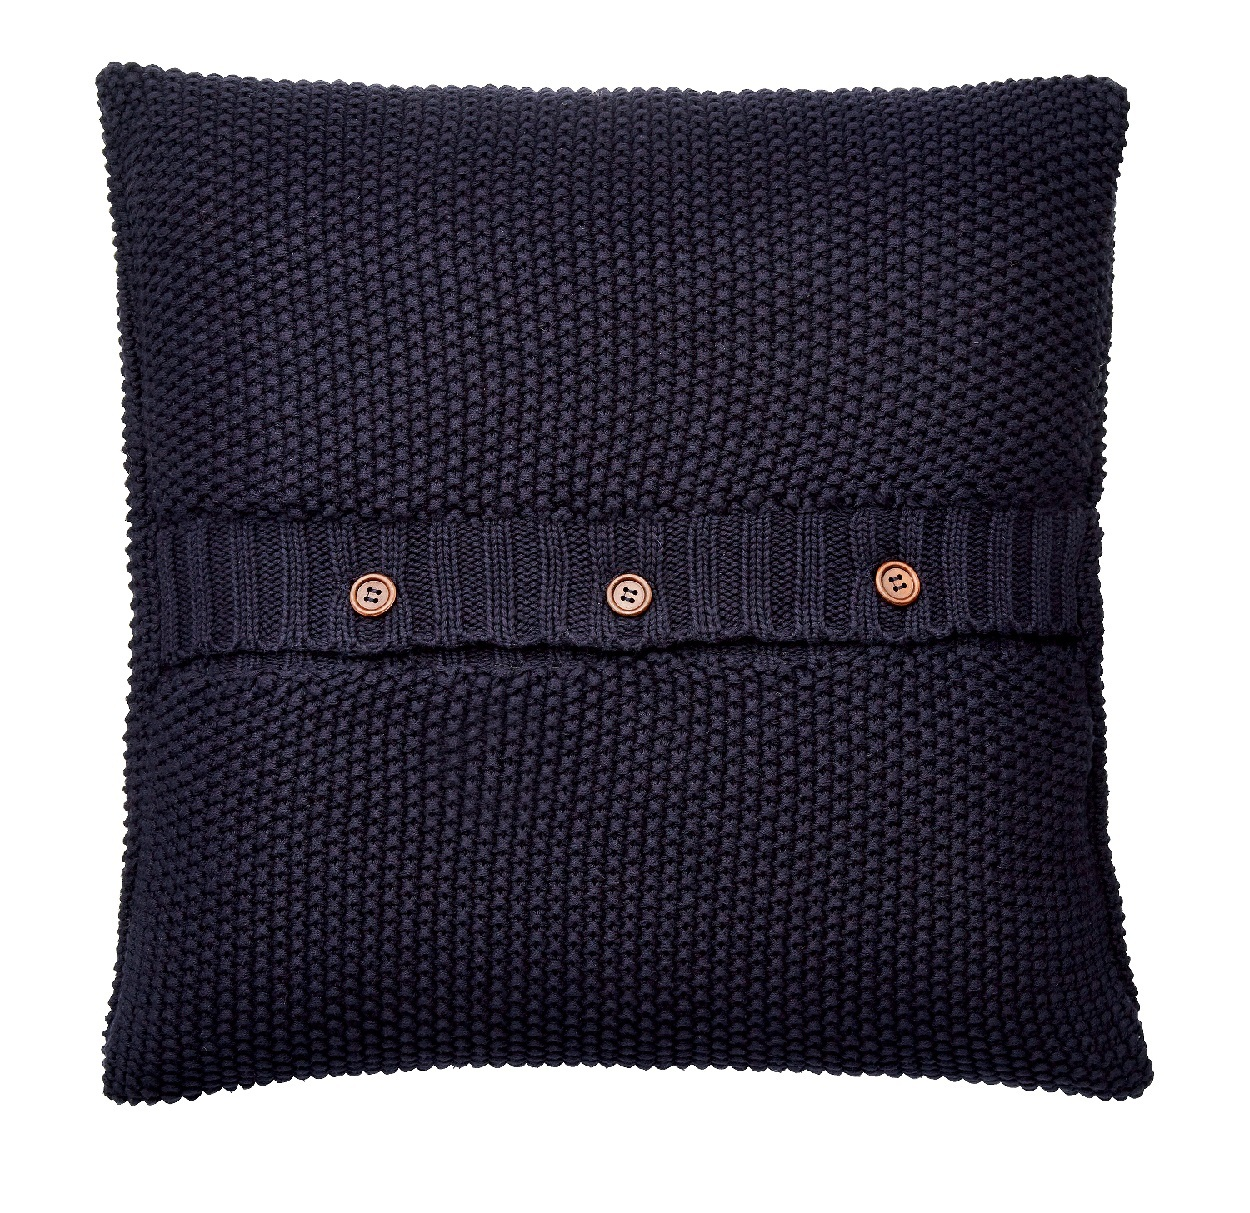 Joules Bircham Bloom Green Navy Knitted Cushion